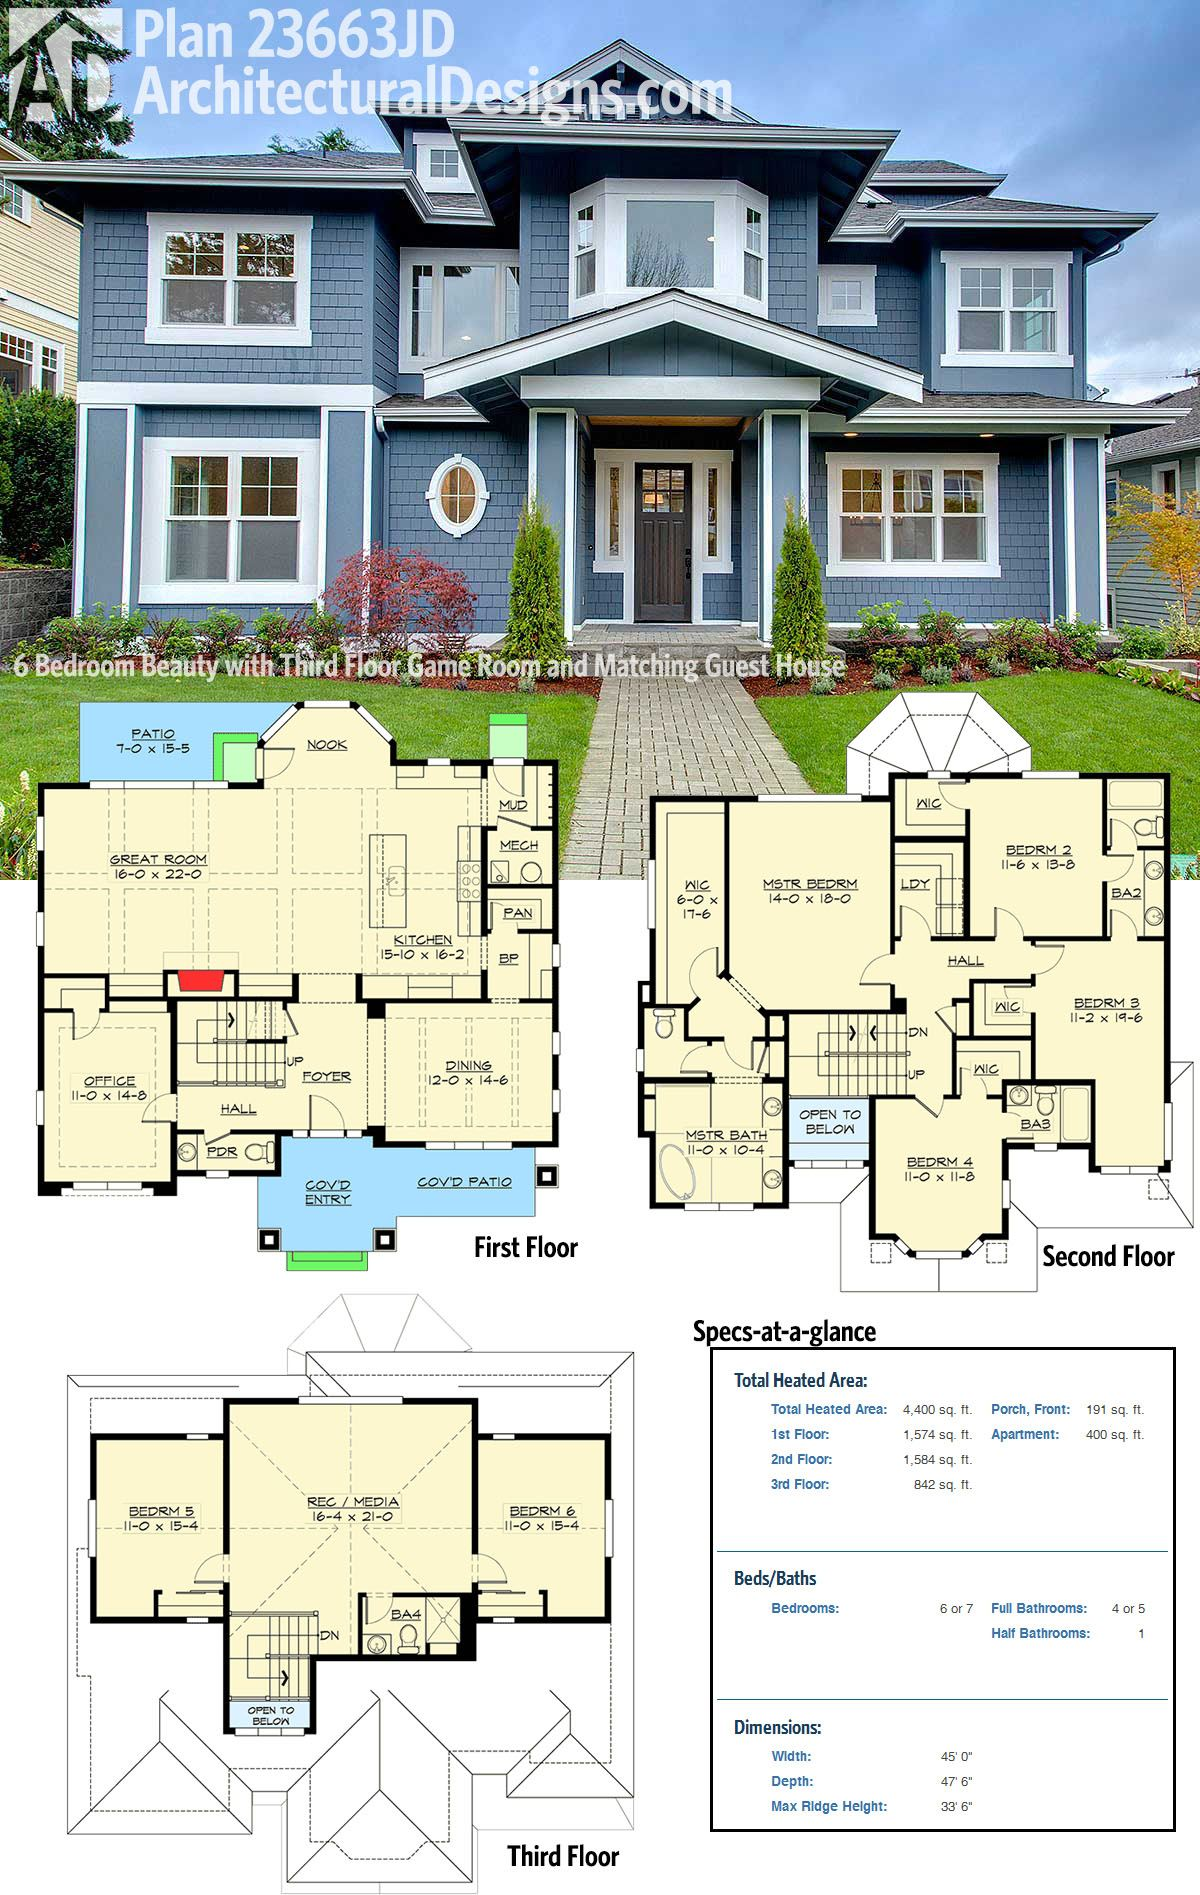 Plan 23663jd 6 bedroom beauty with third floor game room for Building a house layout